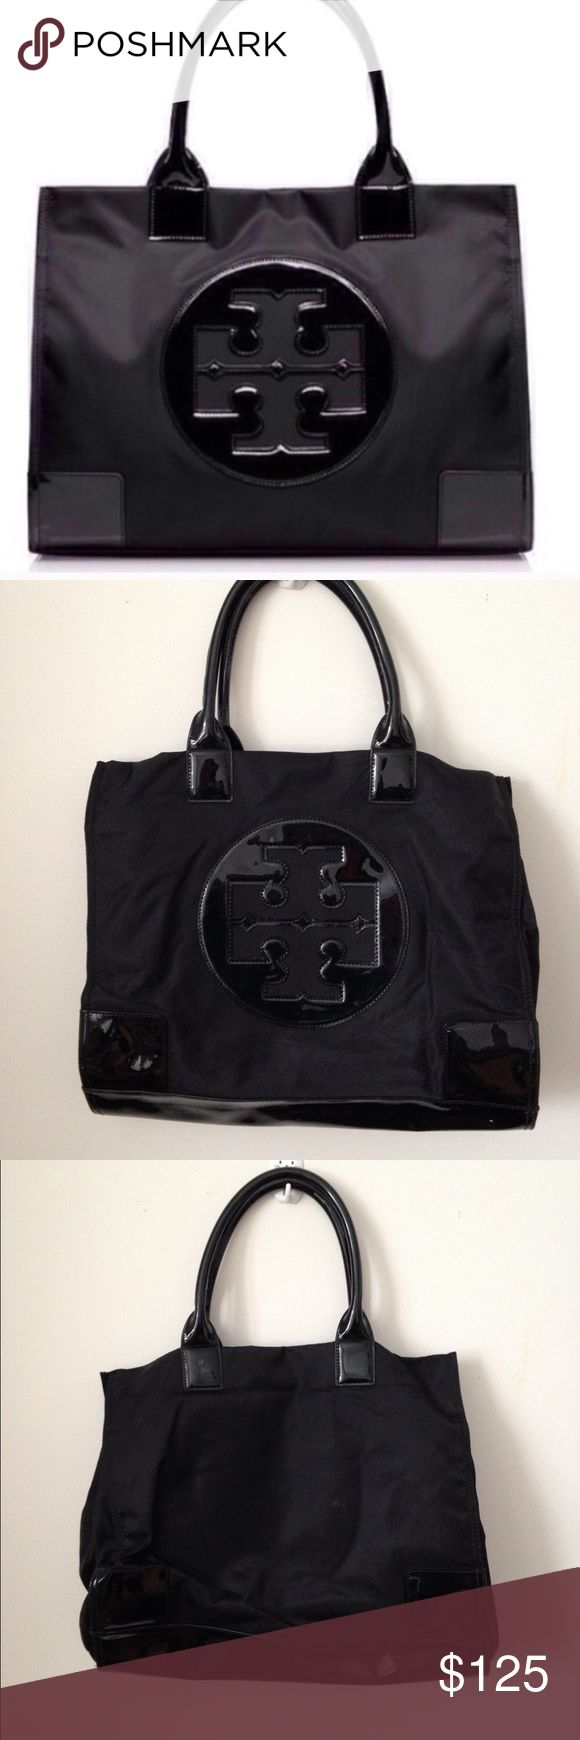 Tory Burch Large Ella Nylon Tote Bag Black Tory Burch Large ELLA Nylon Tote Bag in gently worn shape with some light signs of wear and tear. Light scratches on corners, edge peeling on handles. Perfect for weekend getaways! Tory Burch Bags Totes